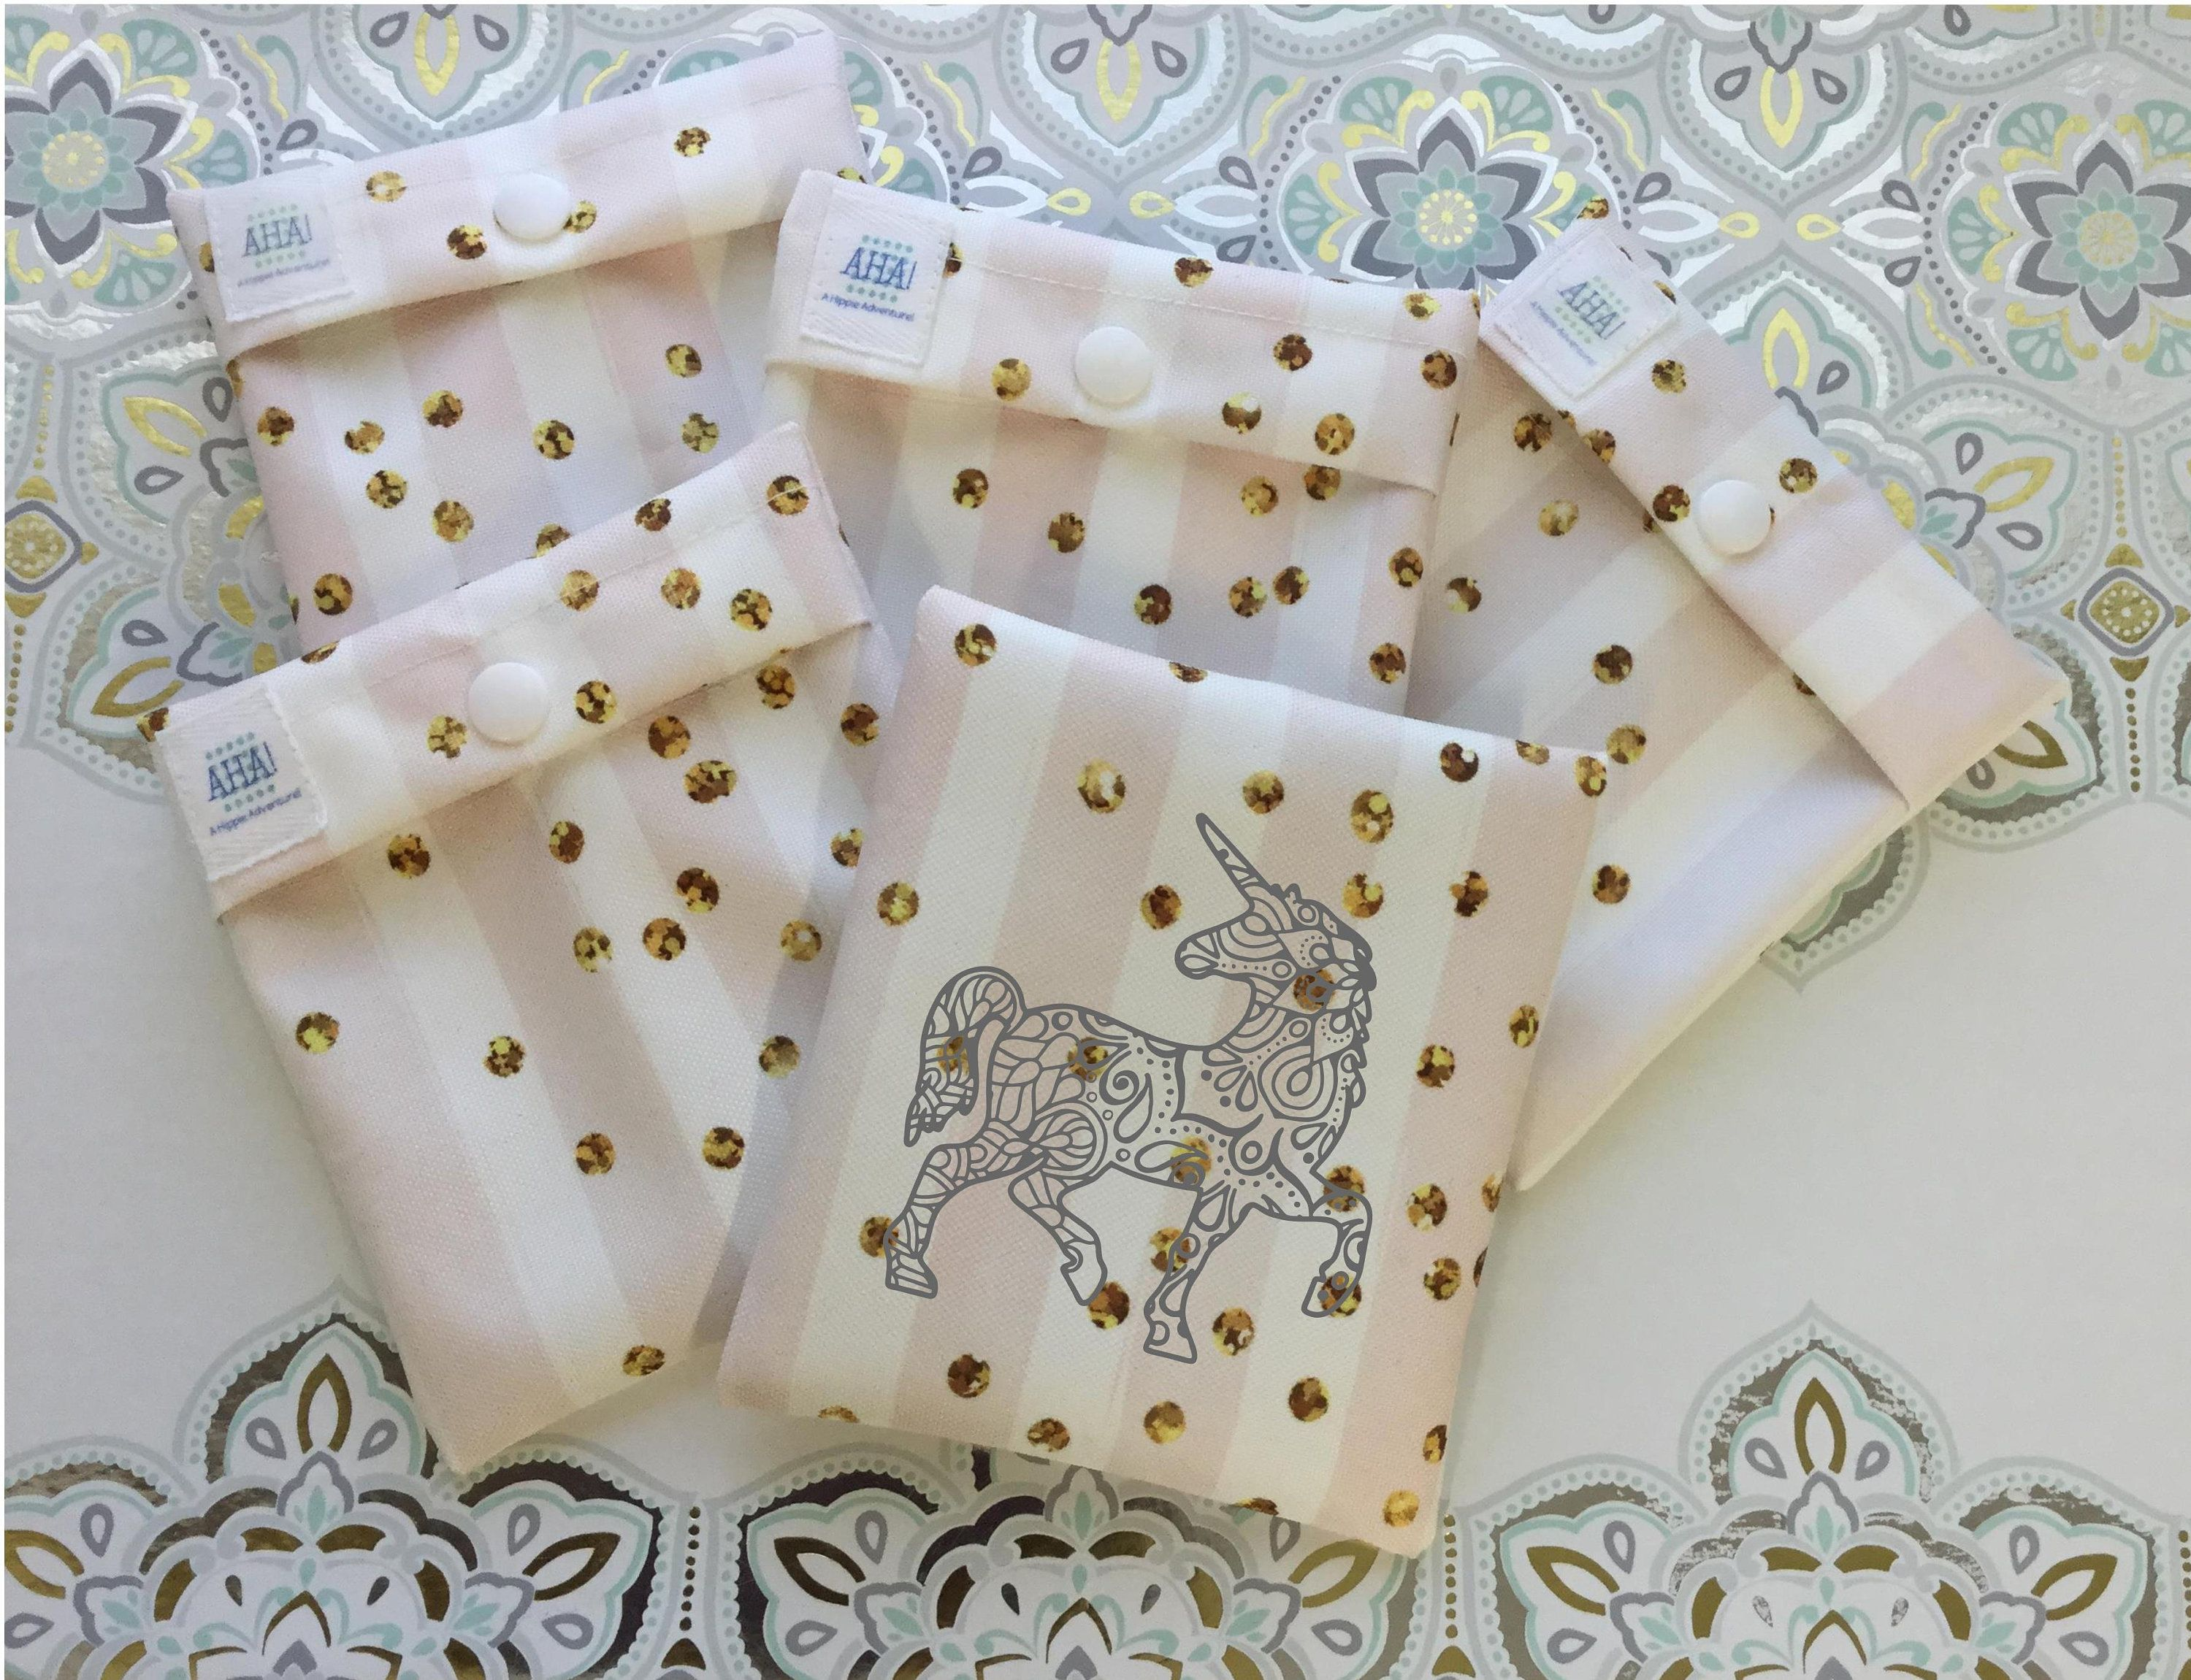 Leak Resistant Pouch for Cloth Menstrual Pad, Snap Close Pad Wrapper, Menstrual Cup Pouch, Cloth Pantyliner WetBag, Tampon Holder